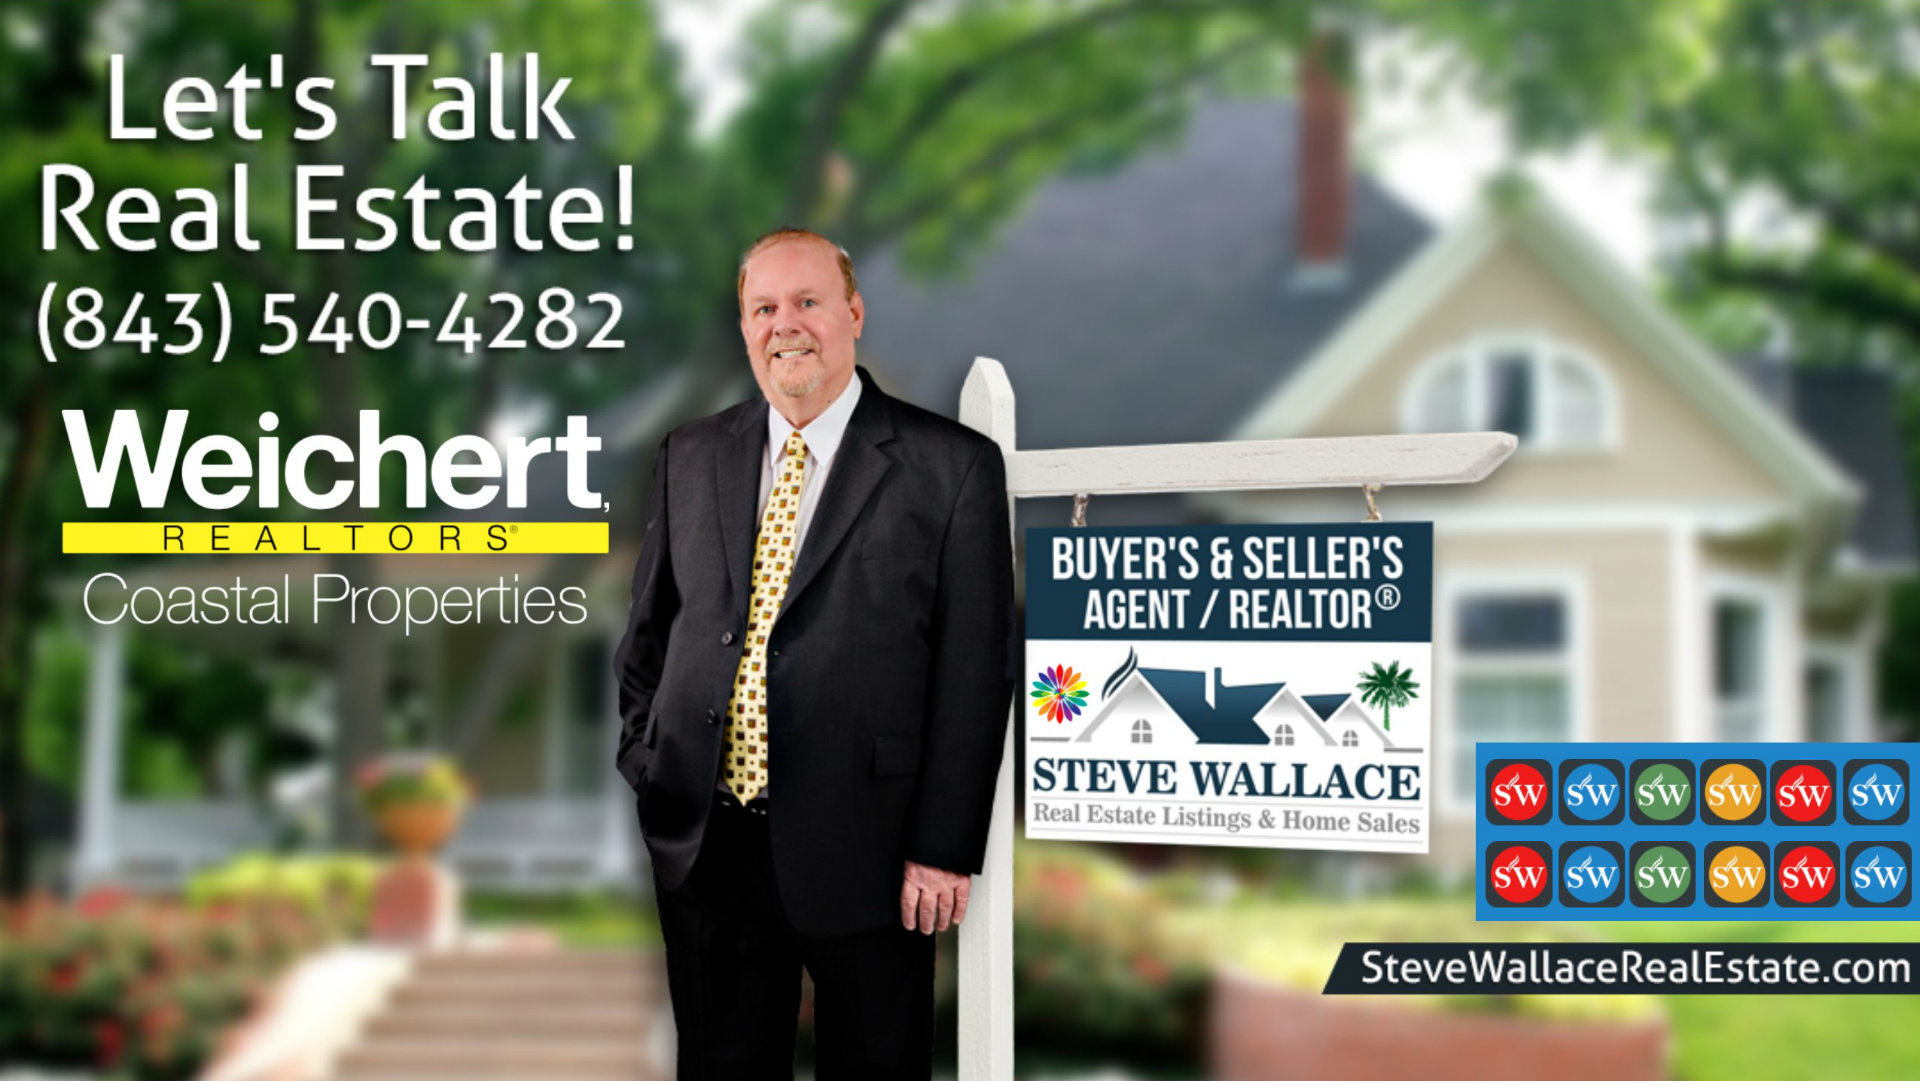 Call, Real Estate Agent, Realtor, Based in Bluffton, SC, Let's talk real estate